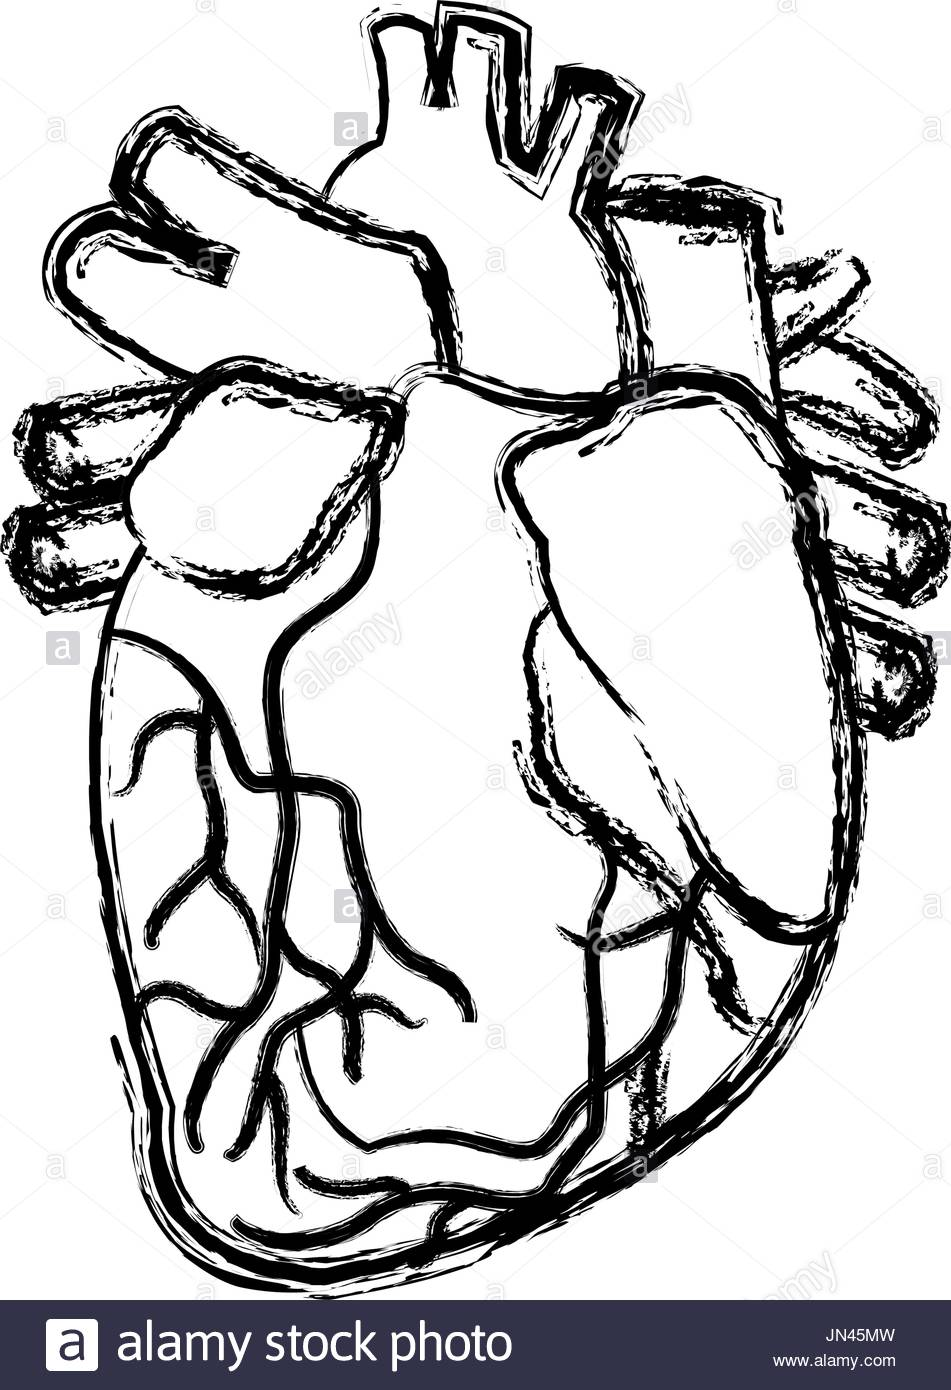 951x1390 Human Heart Black And White Stock Photos Amp Images